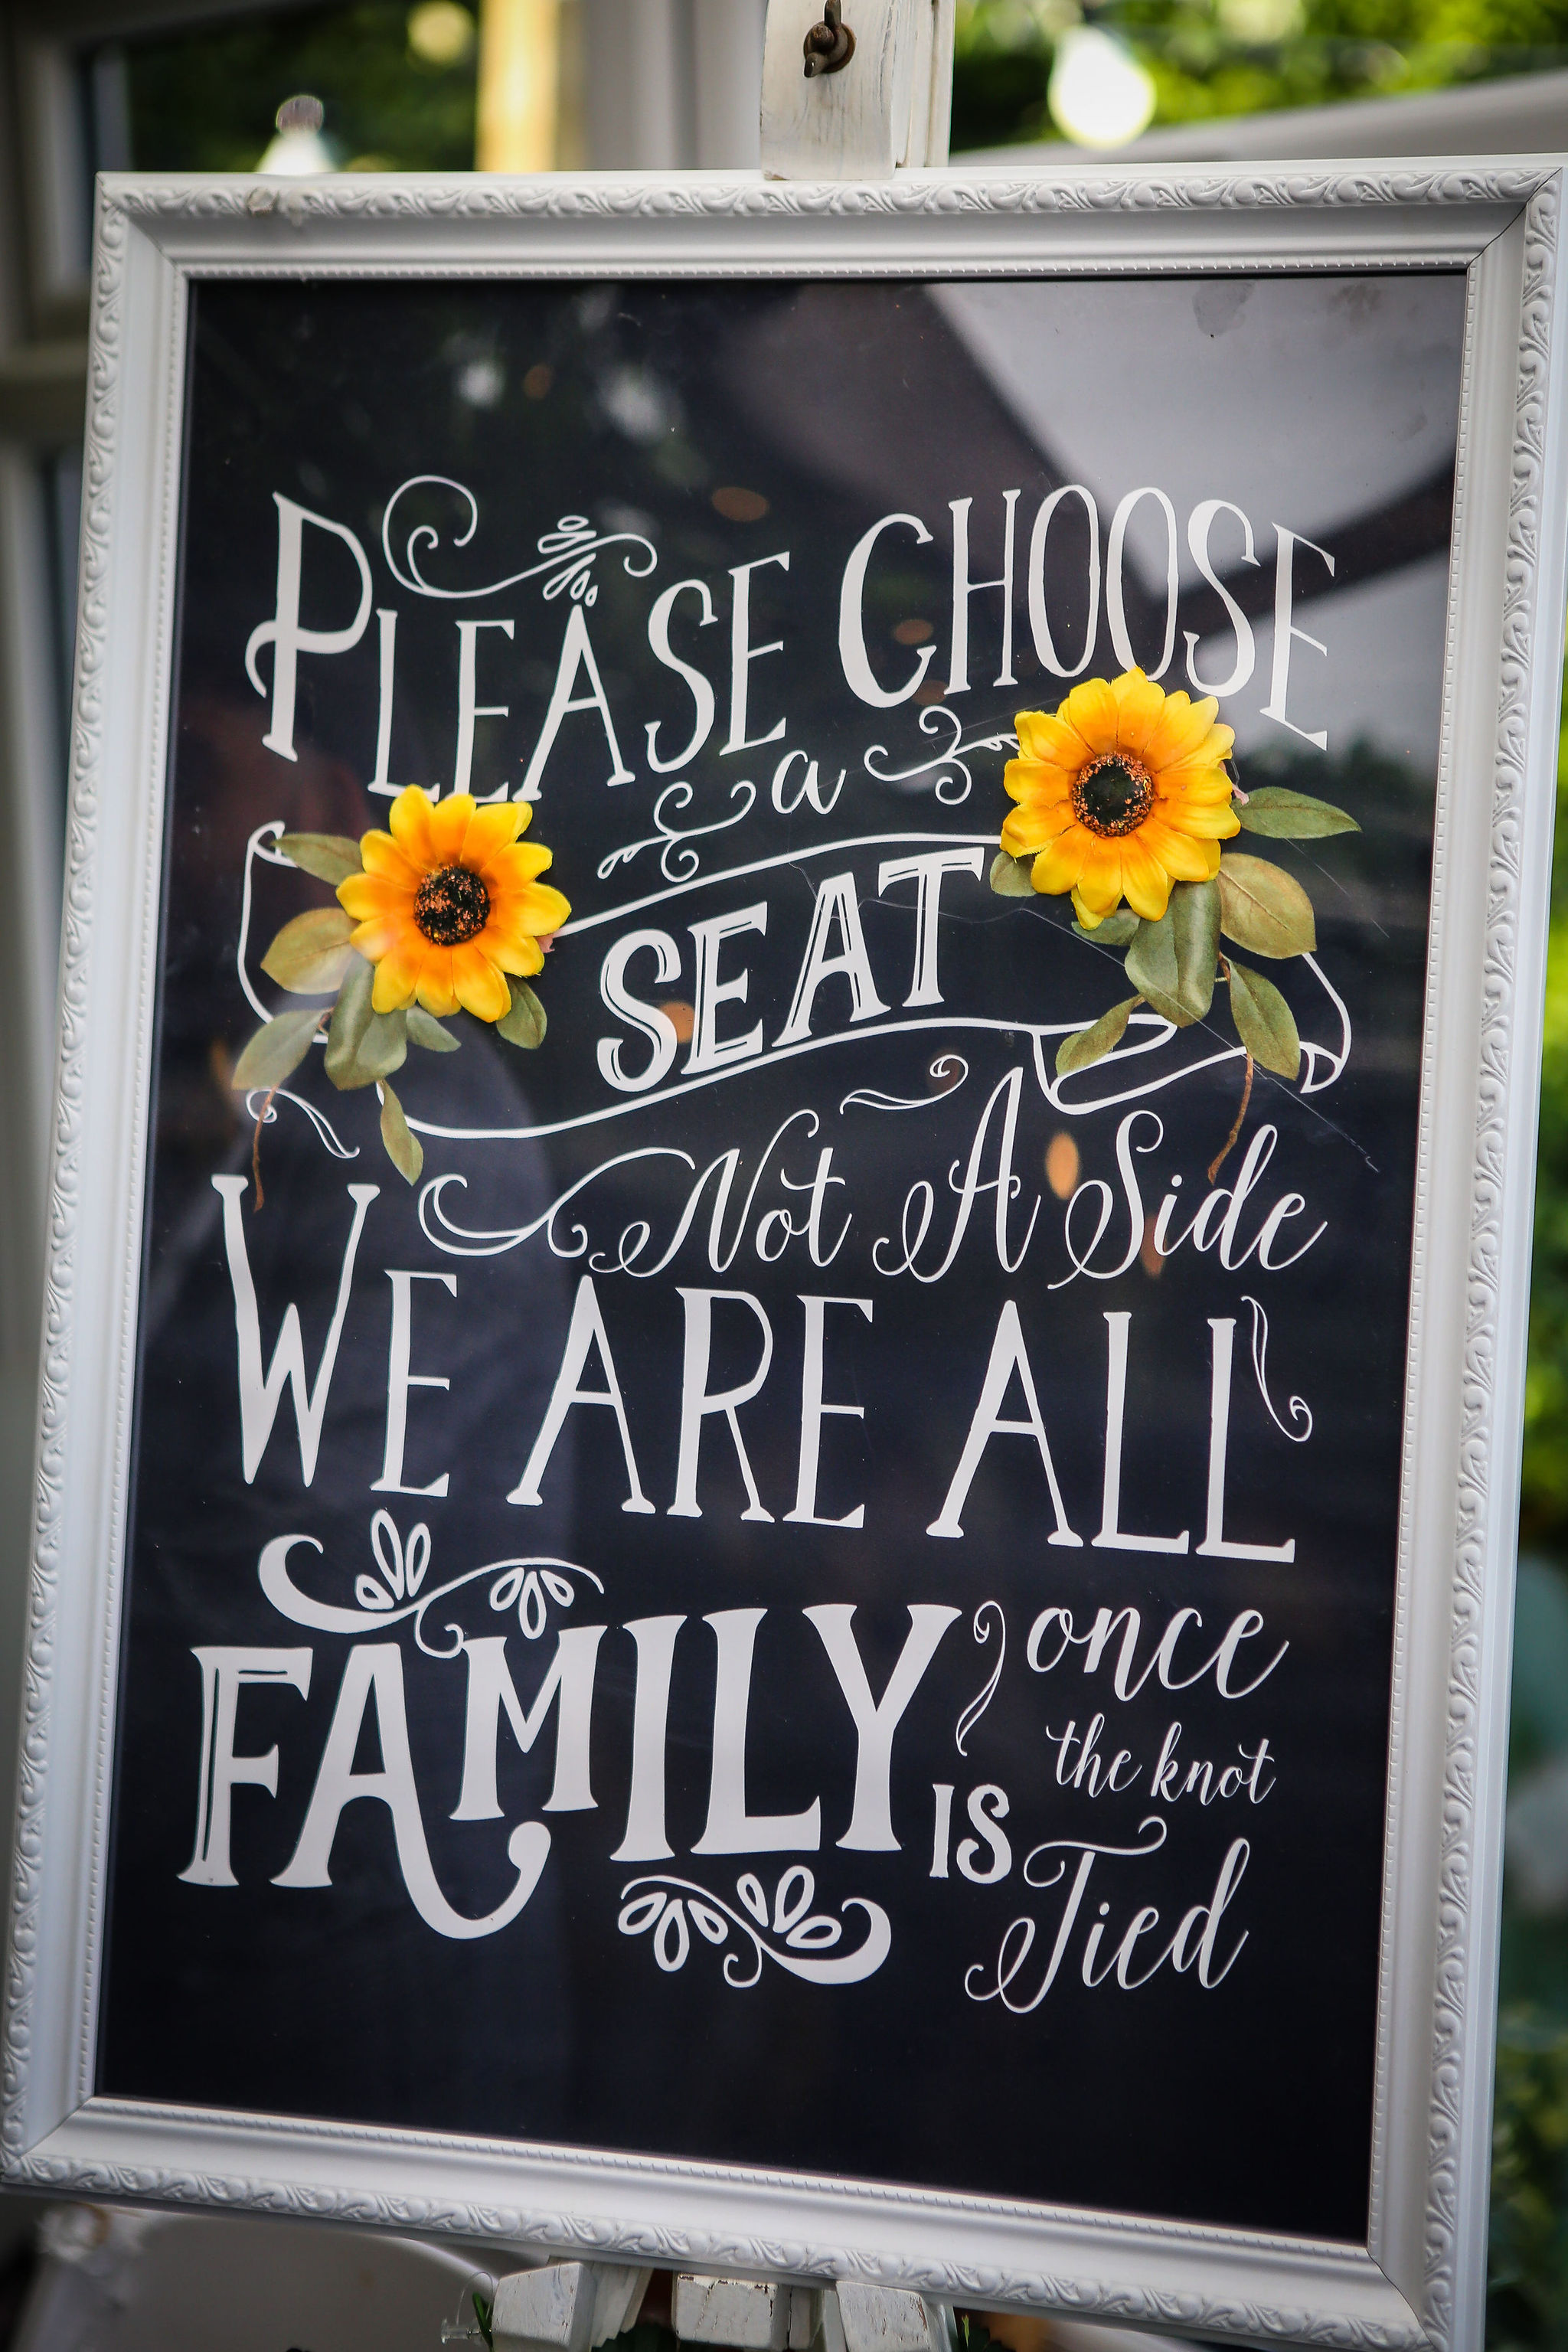 Harriet&Rhys Wedding - Magical sunflower wedding - choose a seat not a side we are all family